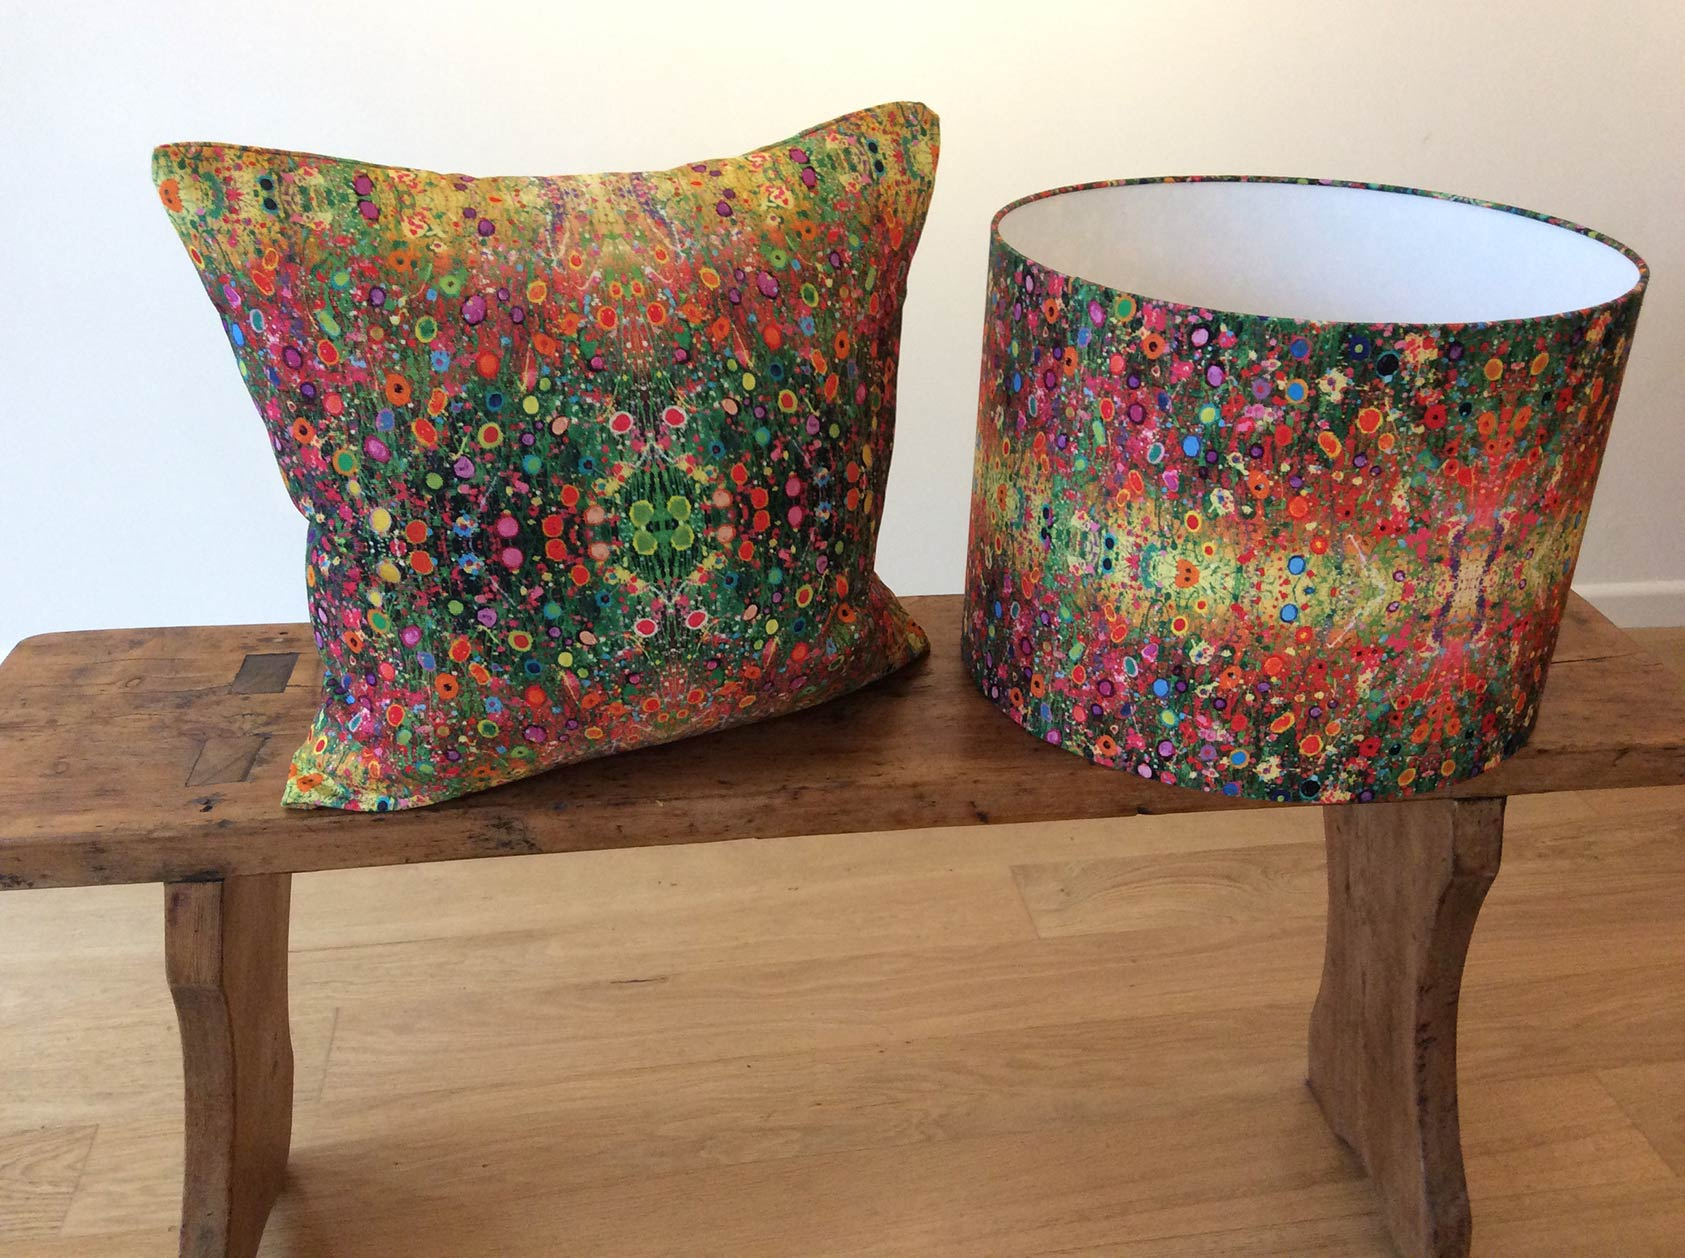 Luxury interior products new collection yvonne coomber for Home interior products